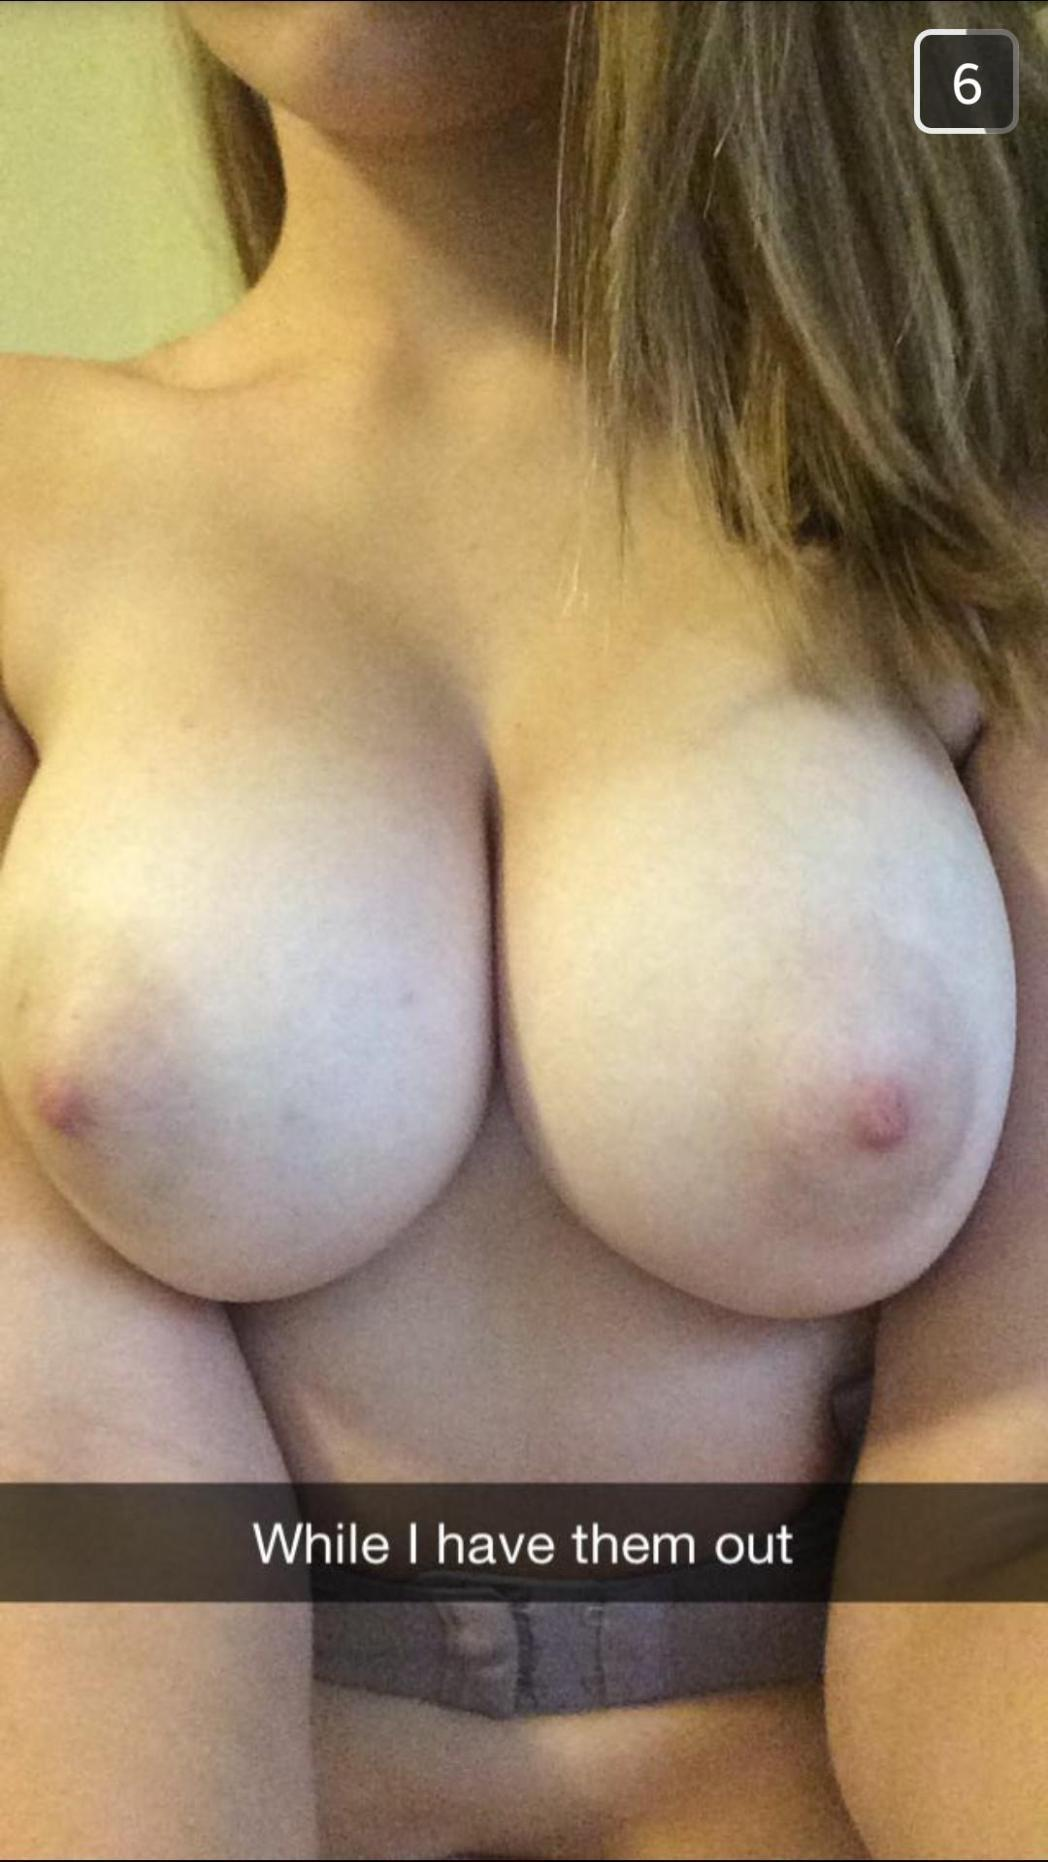 juicy jazmynne fetish and porn ass shaking Amazing, Amazing, Anal, Anal, Assfuck, Assfuck, Bdsm, Bdsm, Bondagesex, Buttfuck, Cockinass, Facesofpain, Fuck, Hardcore, Hardcore, Hot, Hot, Naked, Naked, Nude, Nude, Pain, Painal, Pussy, Pussy, Restrained, Restrained, Sexy, Sexy, Sosexy, Sosexy, Submissive, Submissive, Unhappy, Vec